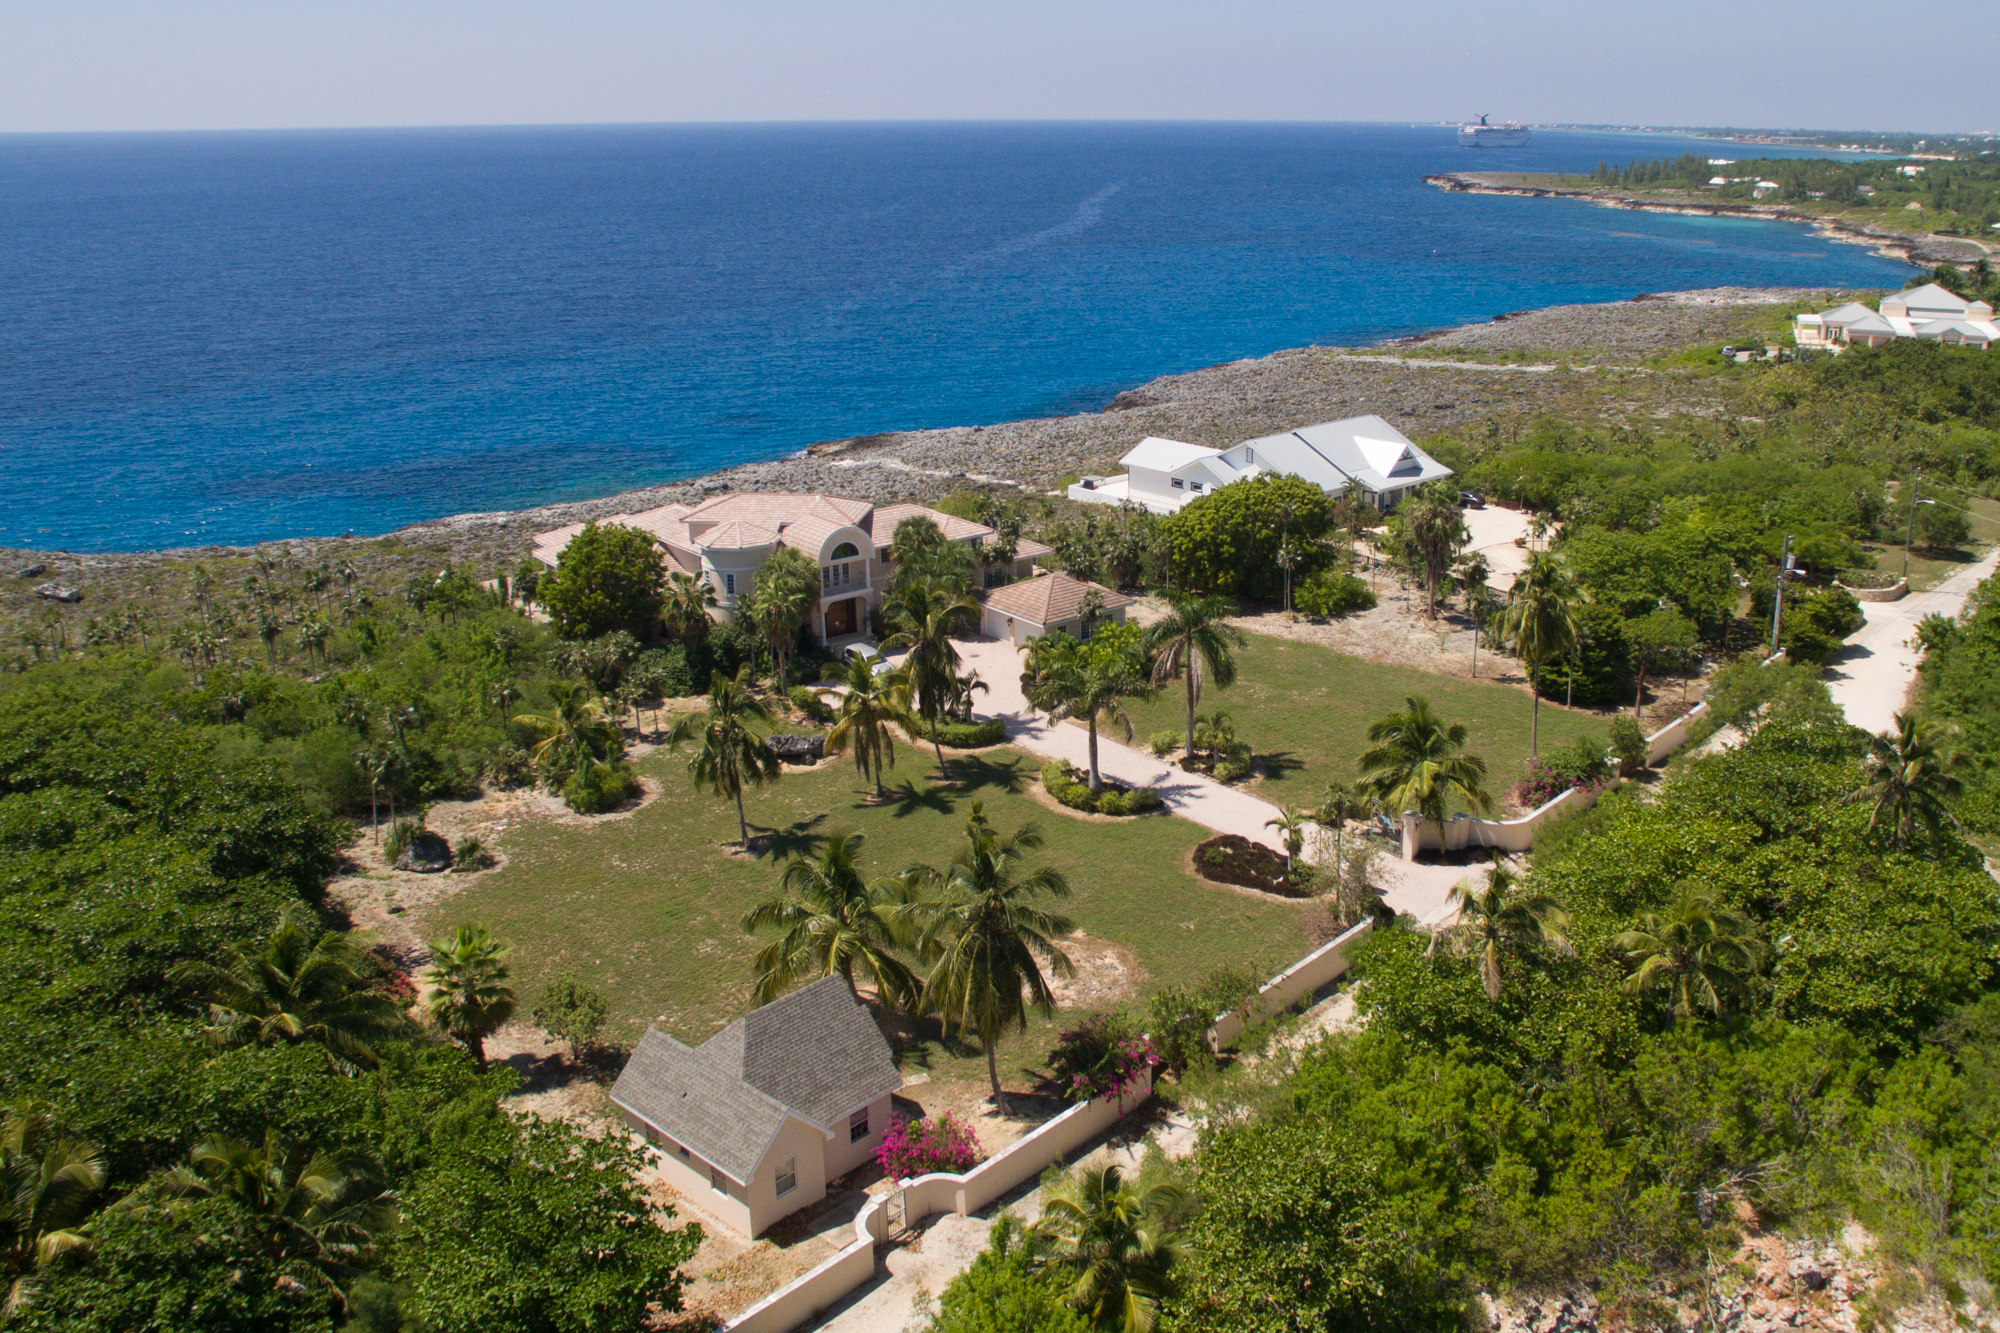 Single Family Home for Sale at Far Horizon Far Horizon 346 Pedro Castle Rd Savannah, Grand Cayman, KY1 Cayman Islands